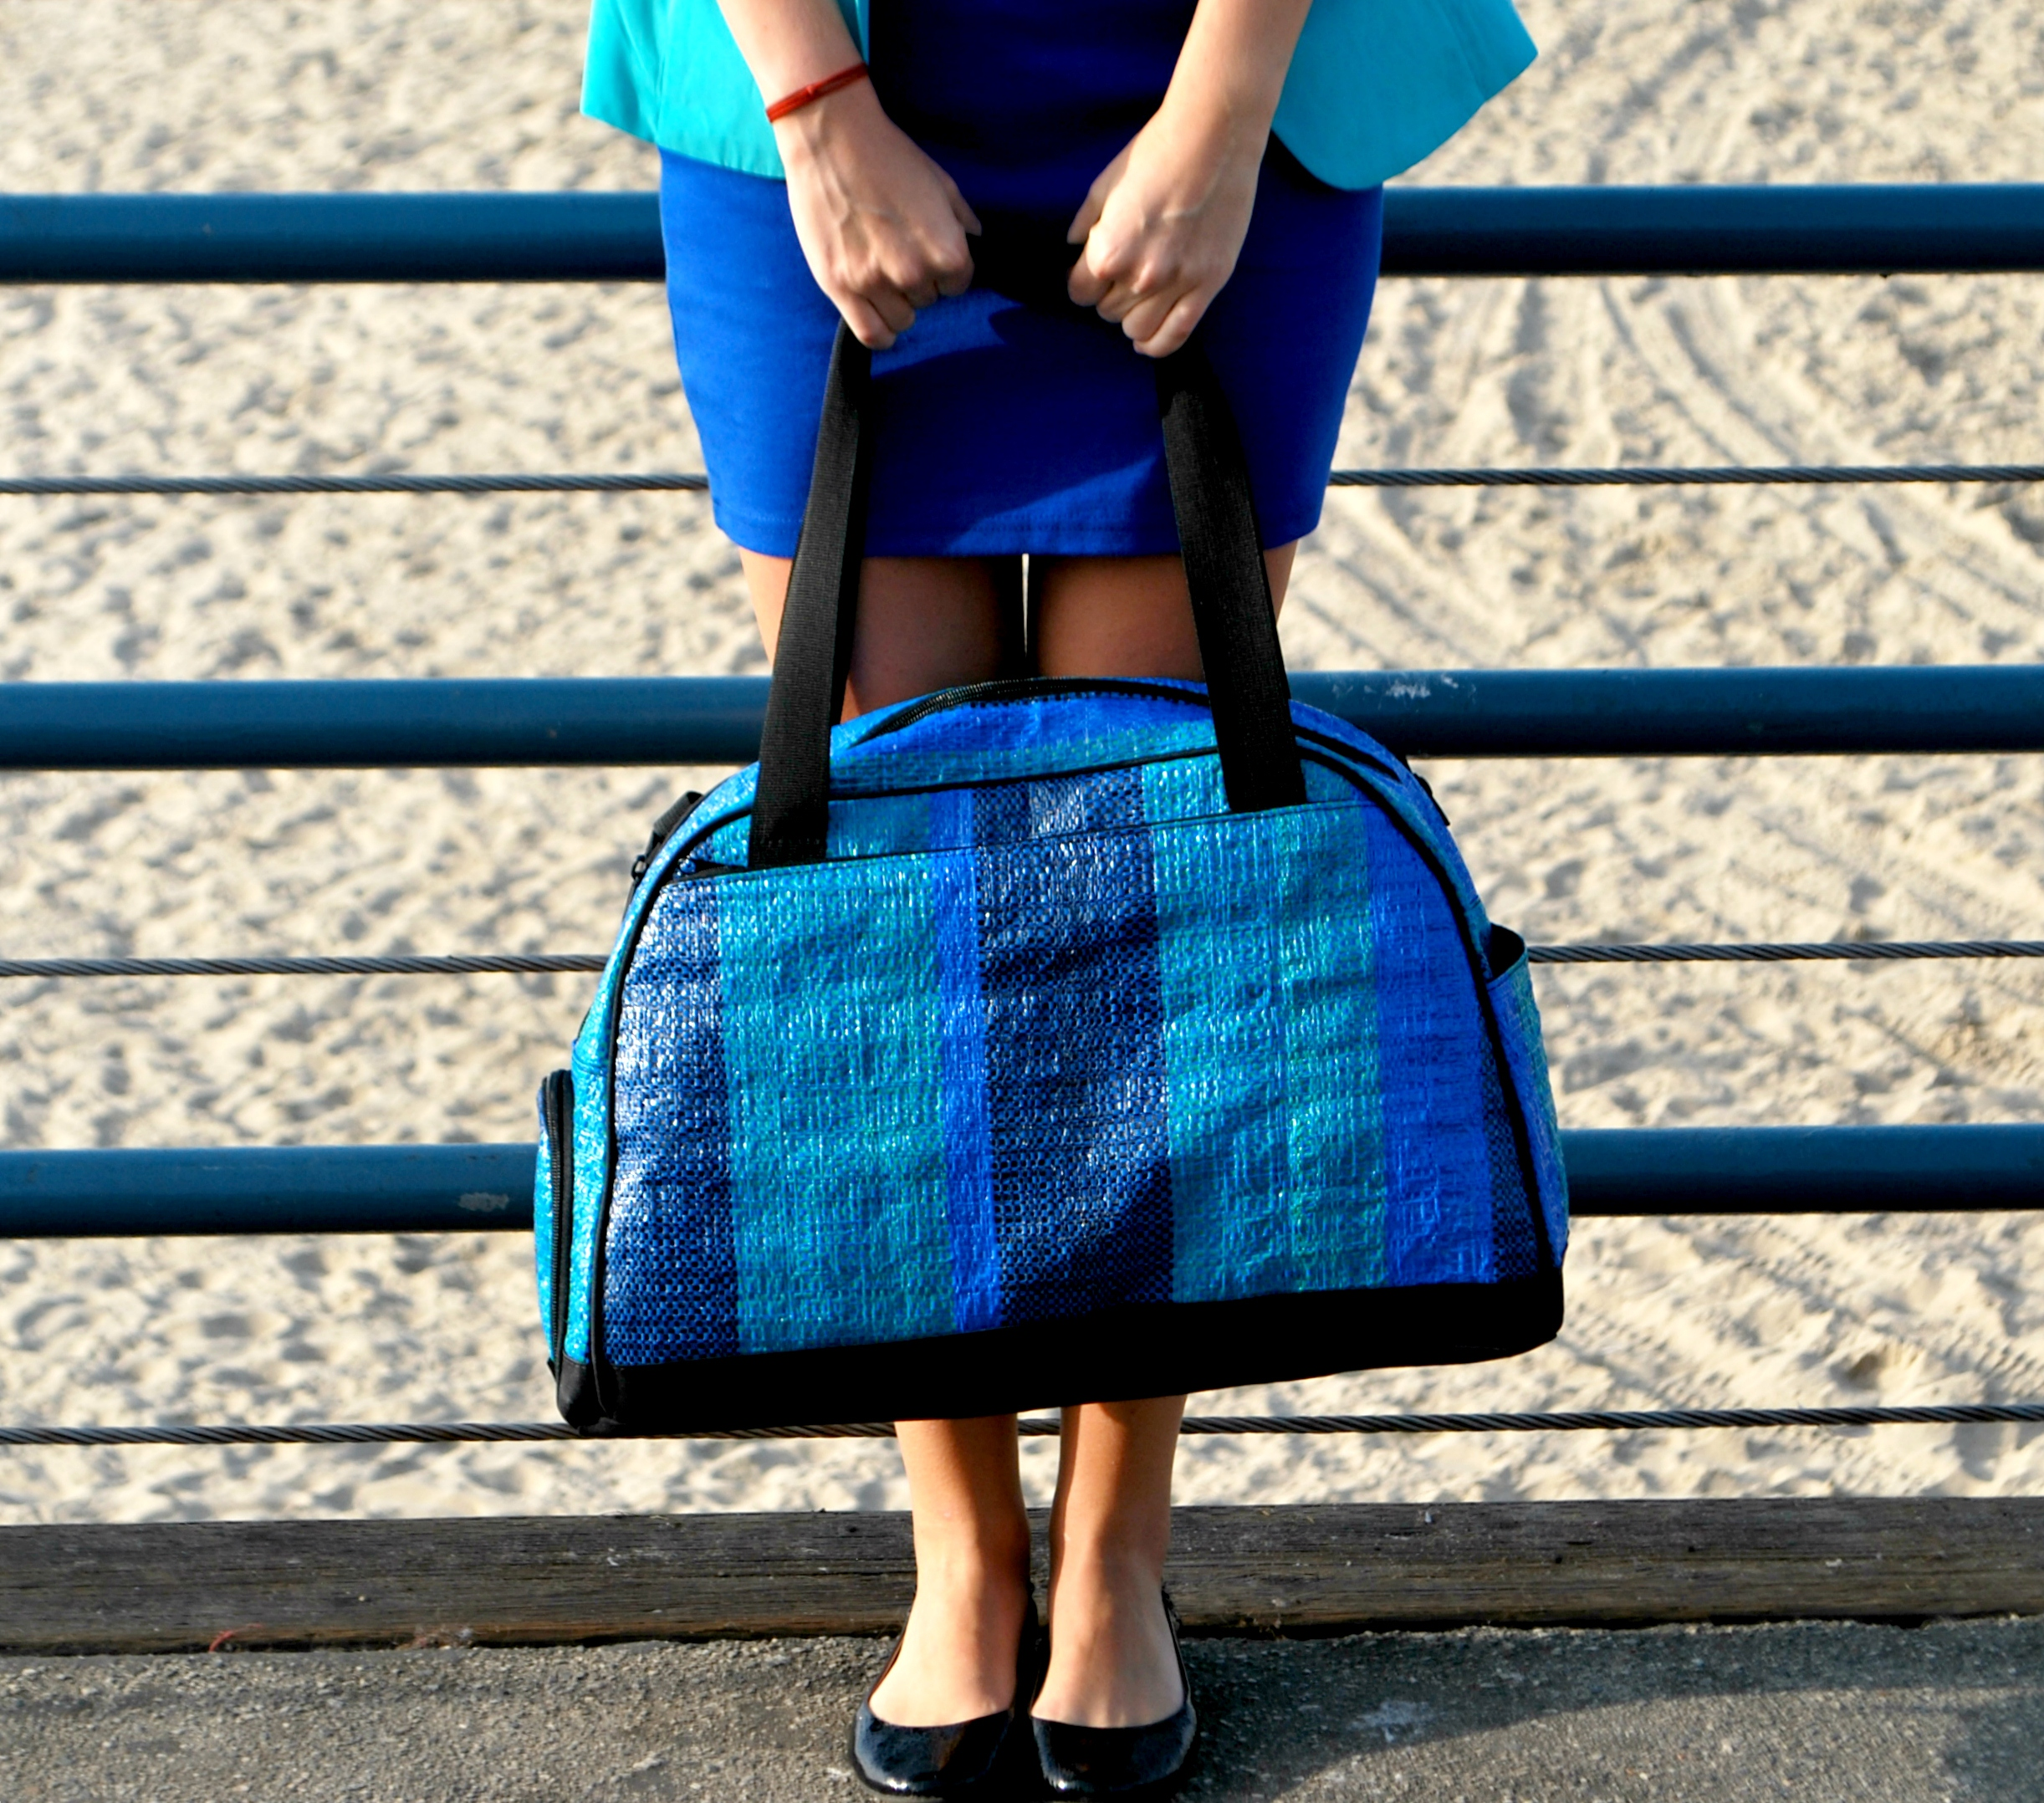 blue bag and feet